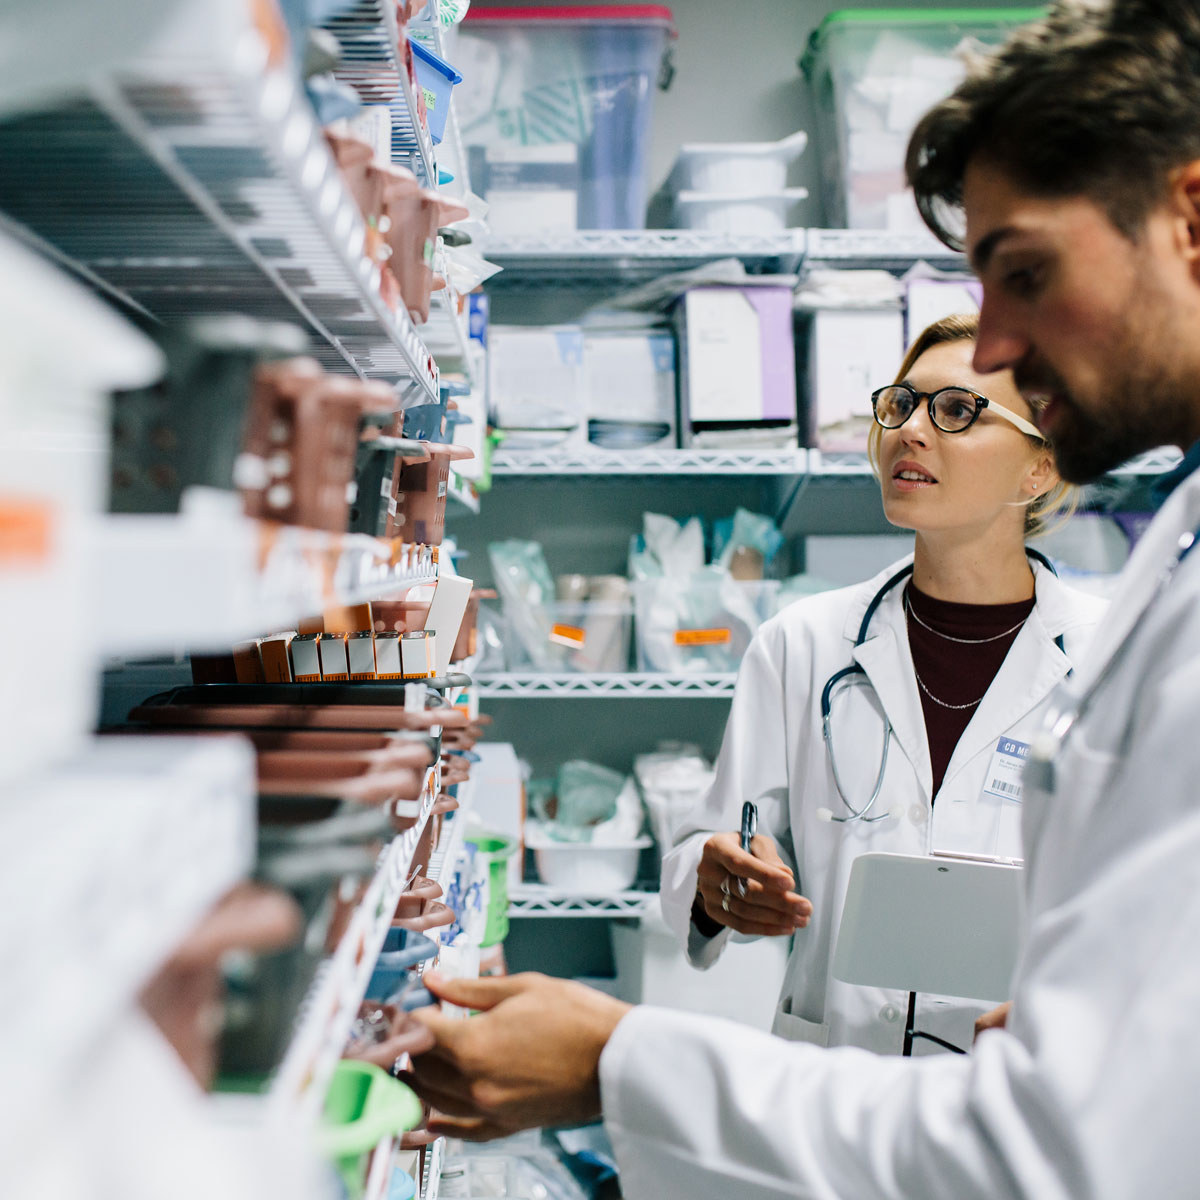 pharmacists-looking-for-medicine